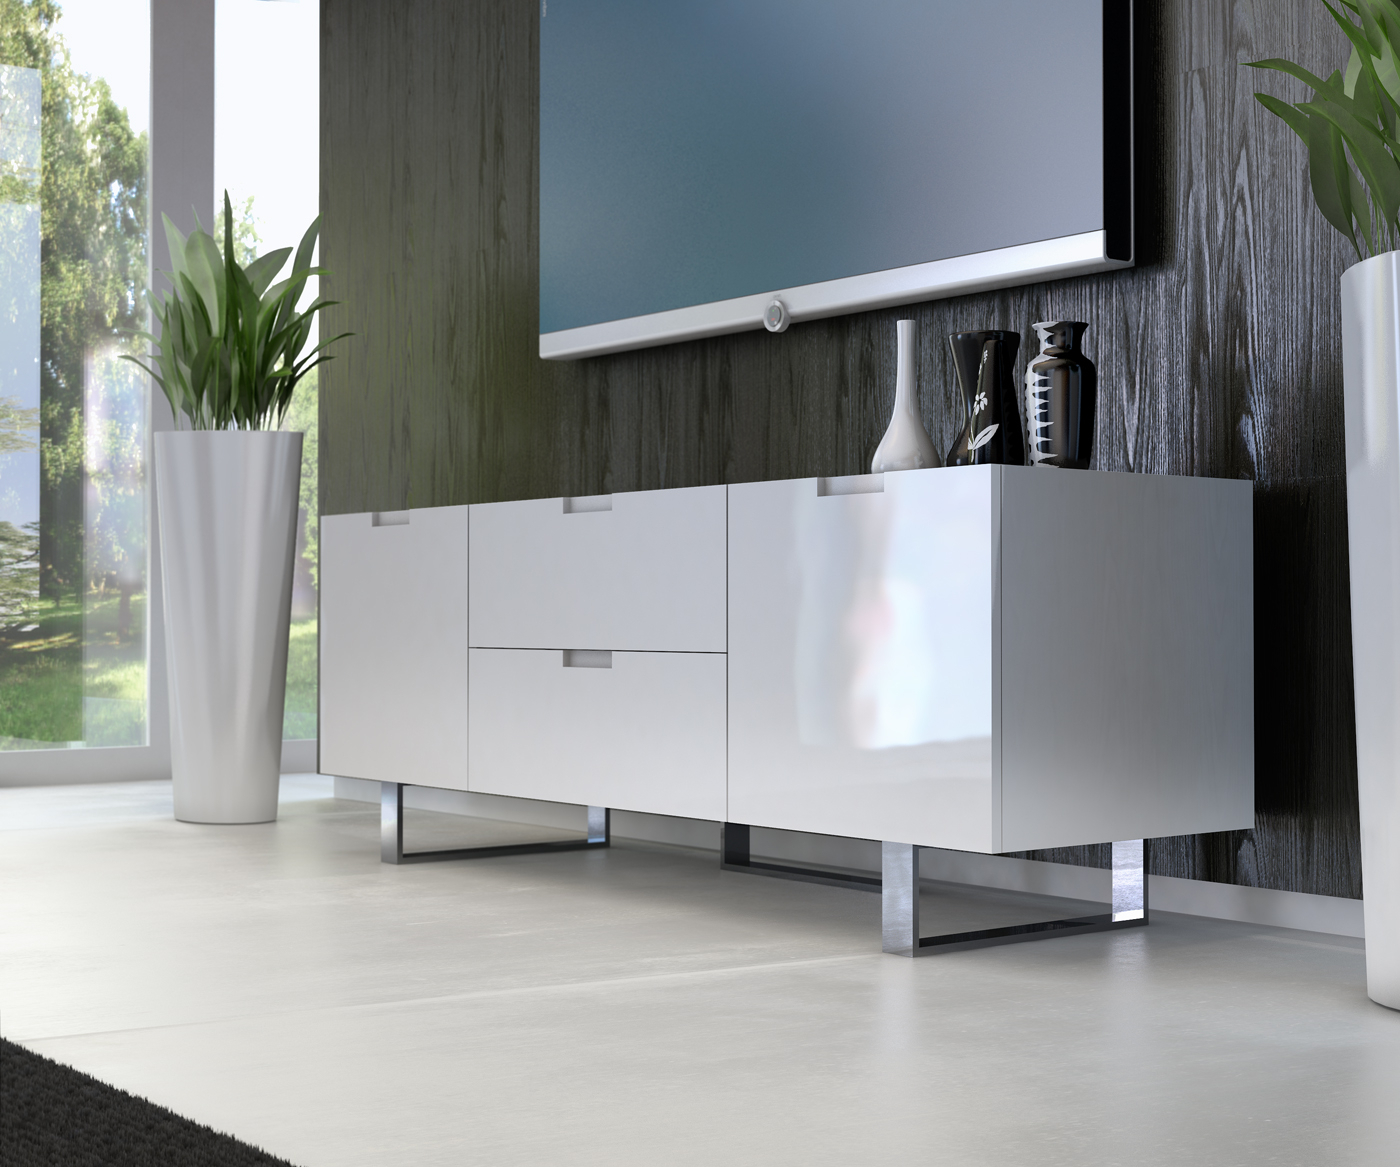 Preferred Contemporary White Tv Stands Inside Ikea Tv Stand White Contemporary Consoles Lacquer Stands With Mount (View 12 of 20)